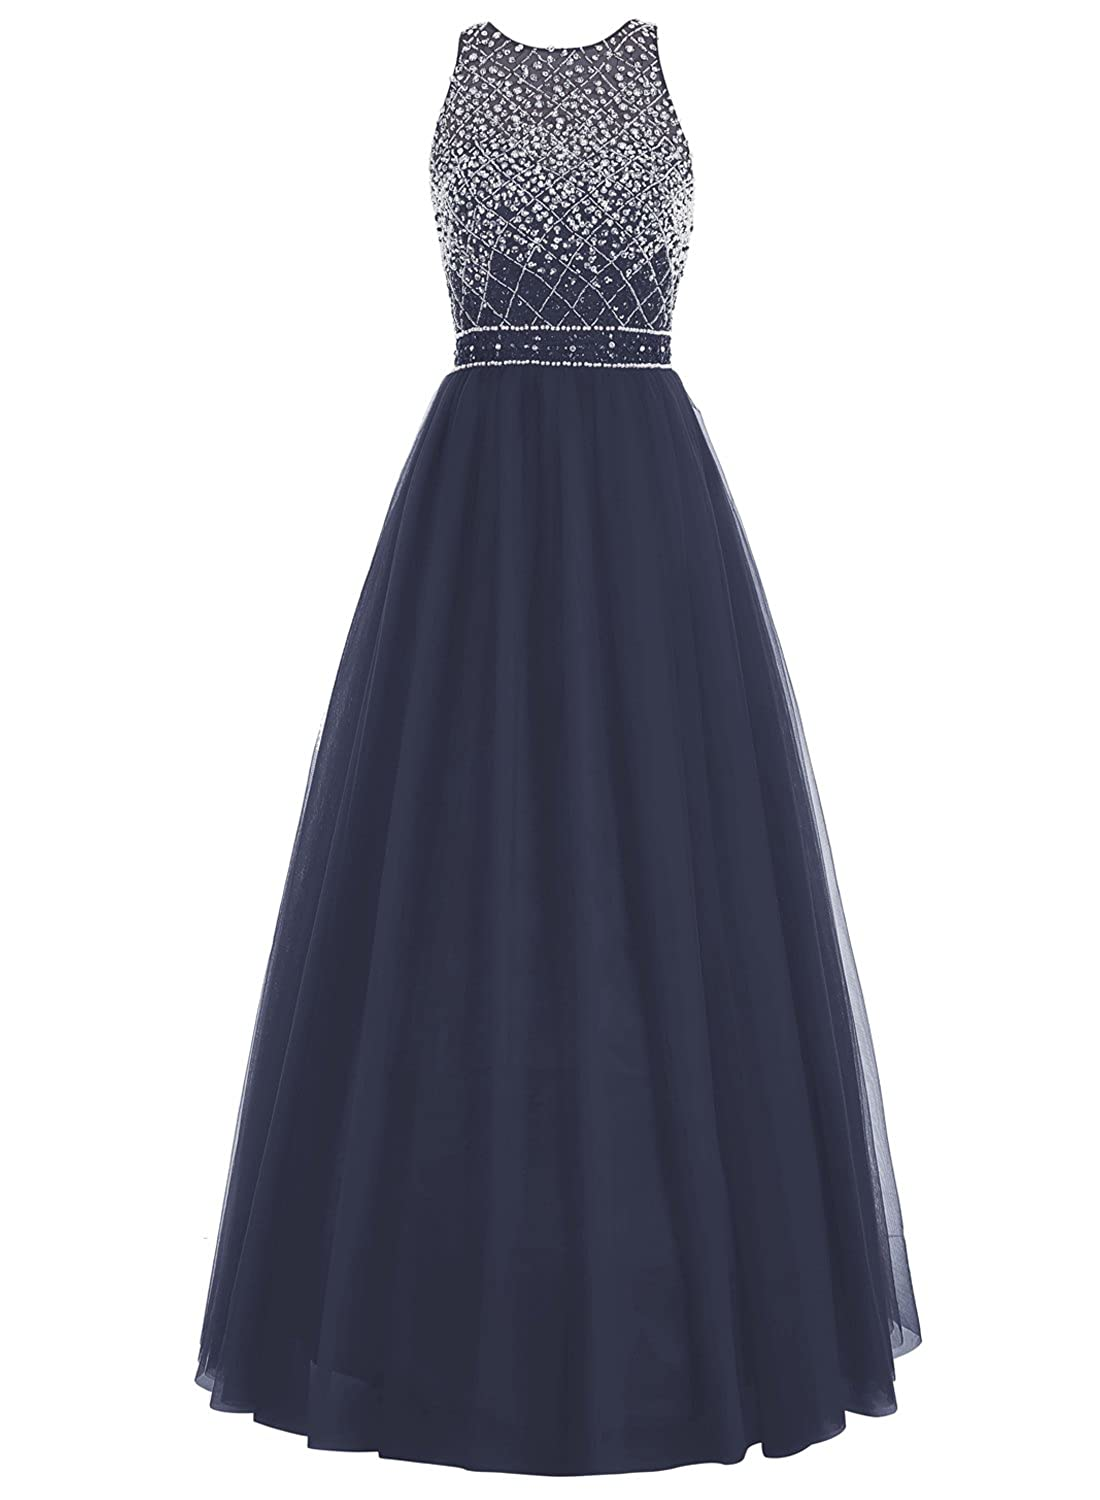 Bbonlinedress Lang Tüll Beaded Kleid Ärmellos Rückenfrei Formell Party Ball Gowns Abendkleid